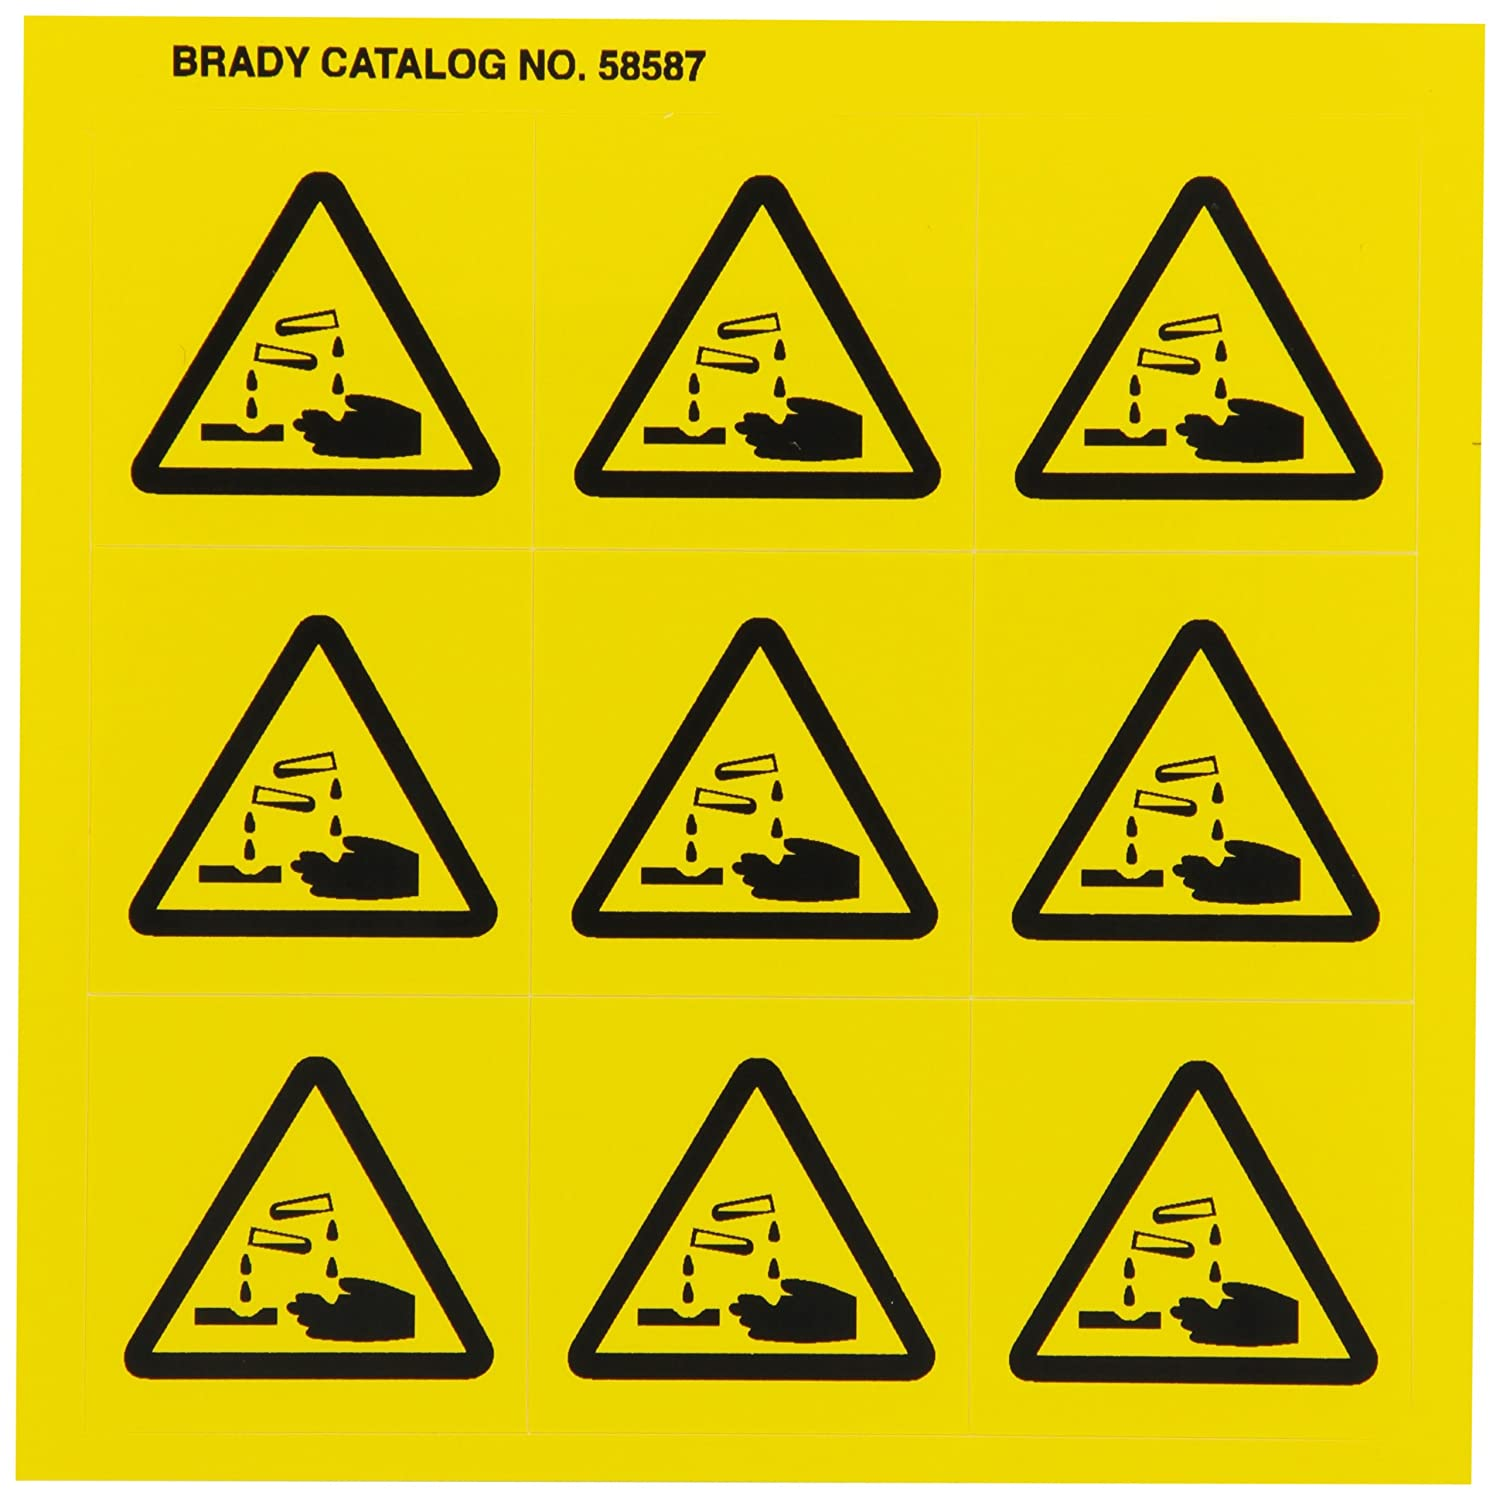 Black On Yellow 1 1//2 Height x 1 1//2 Width 9 Per Card, 1 Card per Package Brady 58587 Pressure Sensitive Vinyl Right-To-Know Pictogram Labels Pictogram Corrosive